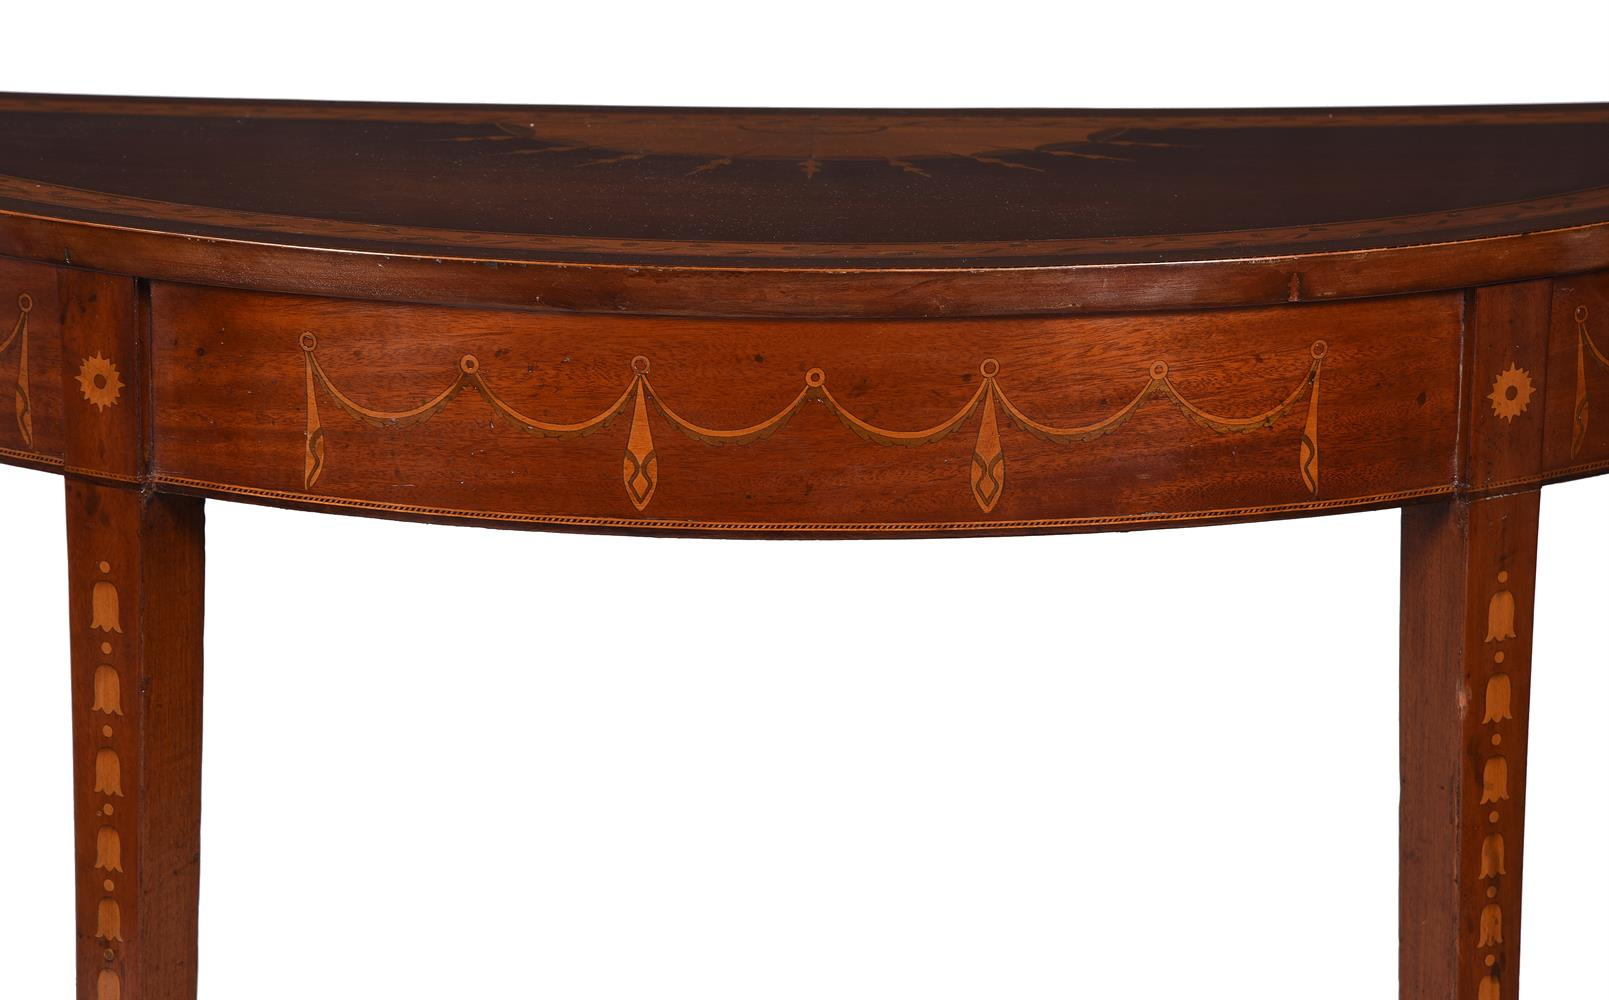 A PAIR OF GEORGE III MAHOGANY, SATINWOOD AND MARQUETRY DEMI-LUNE SIDE TABLES, CIRCA 1790 - Image 4 of 6